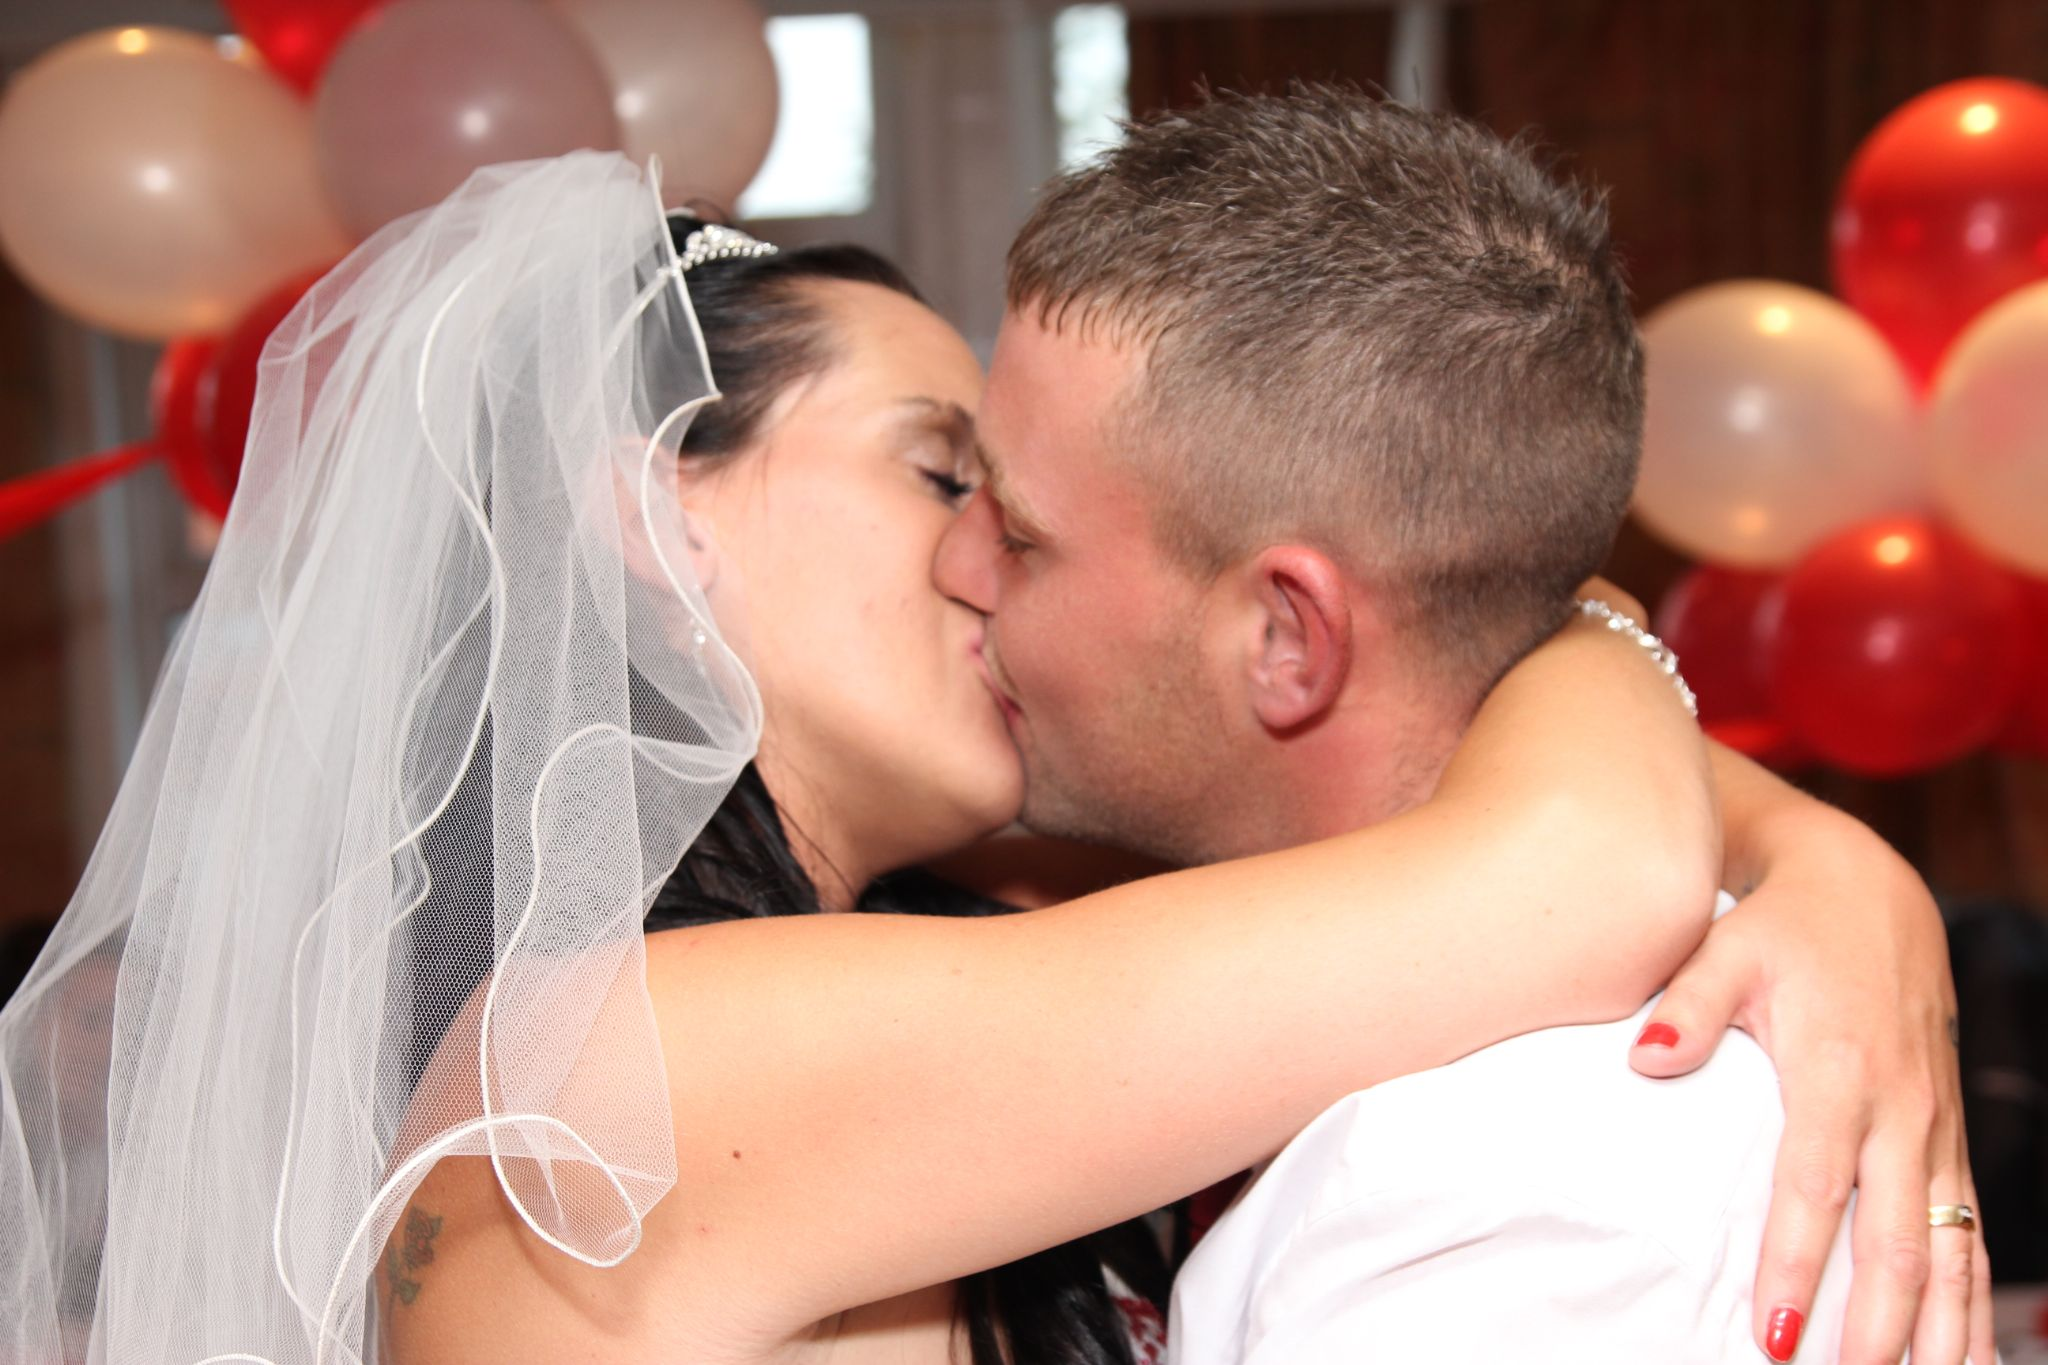 A kiss by Nige Photography